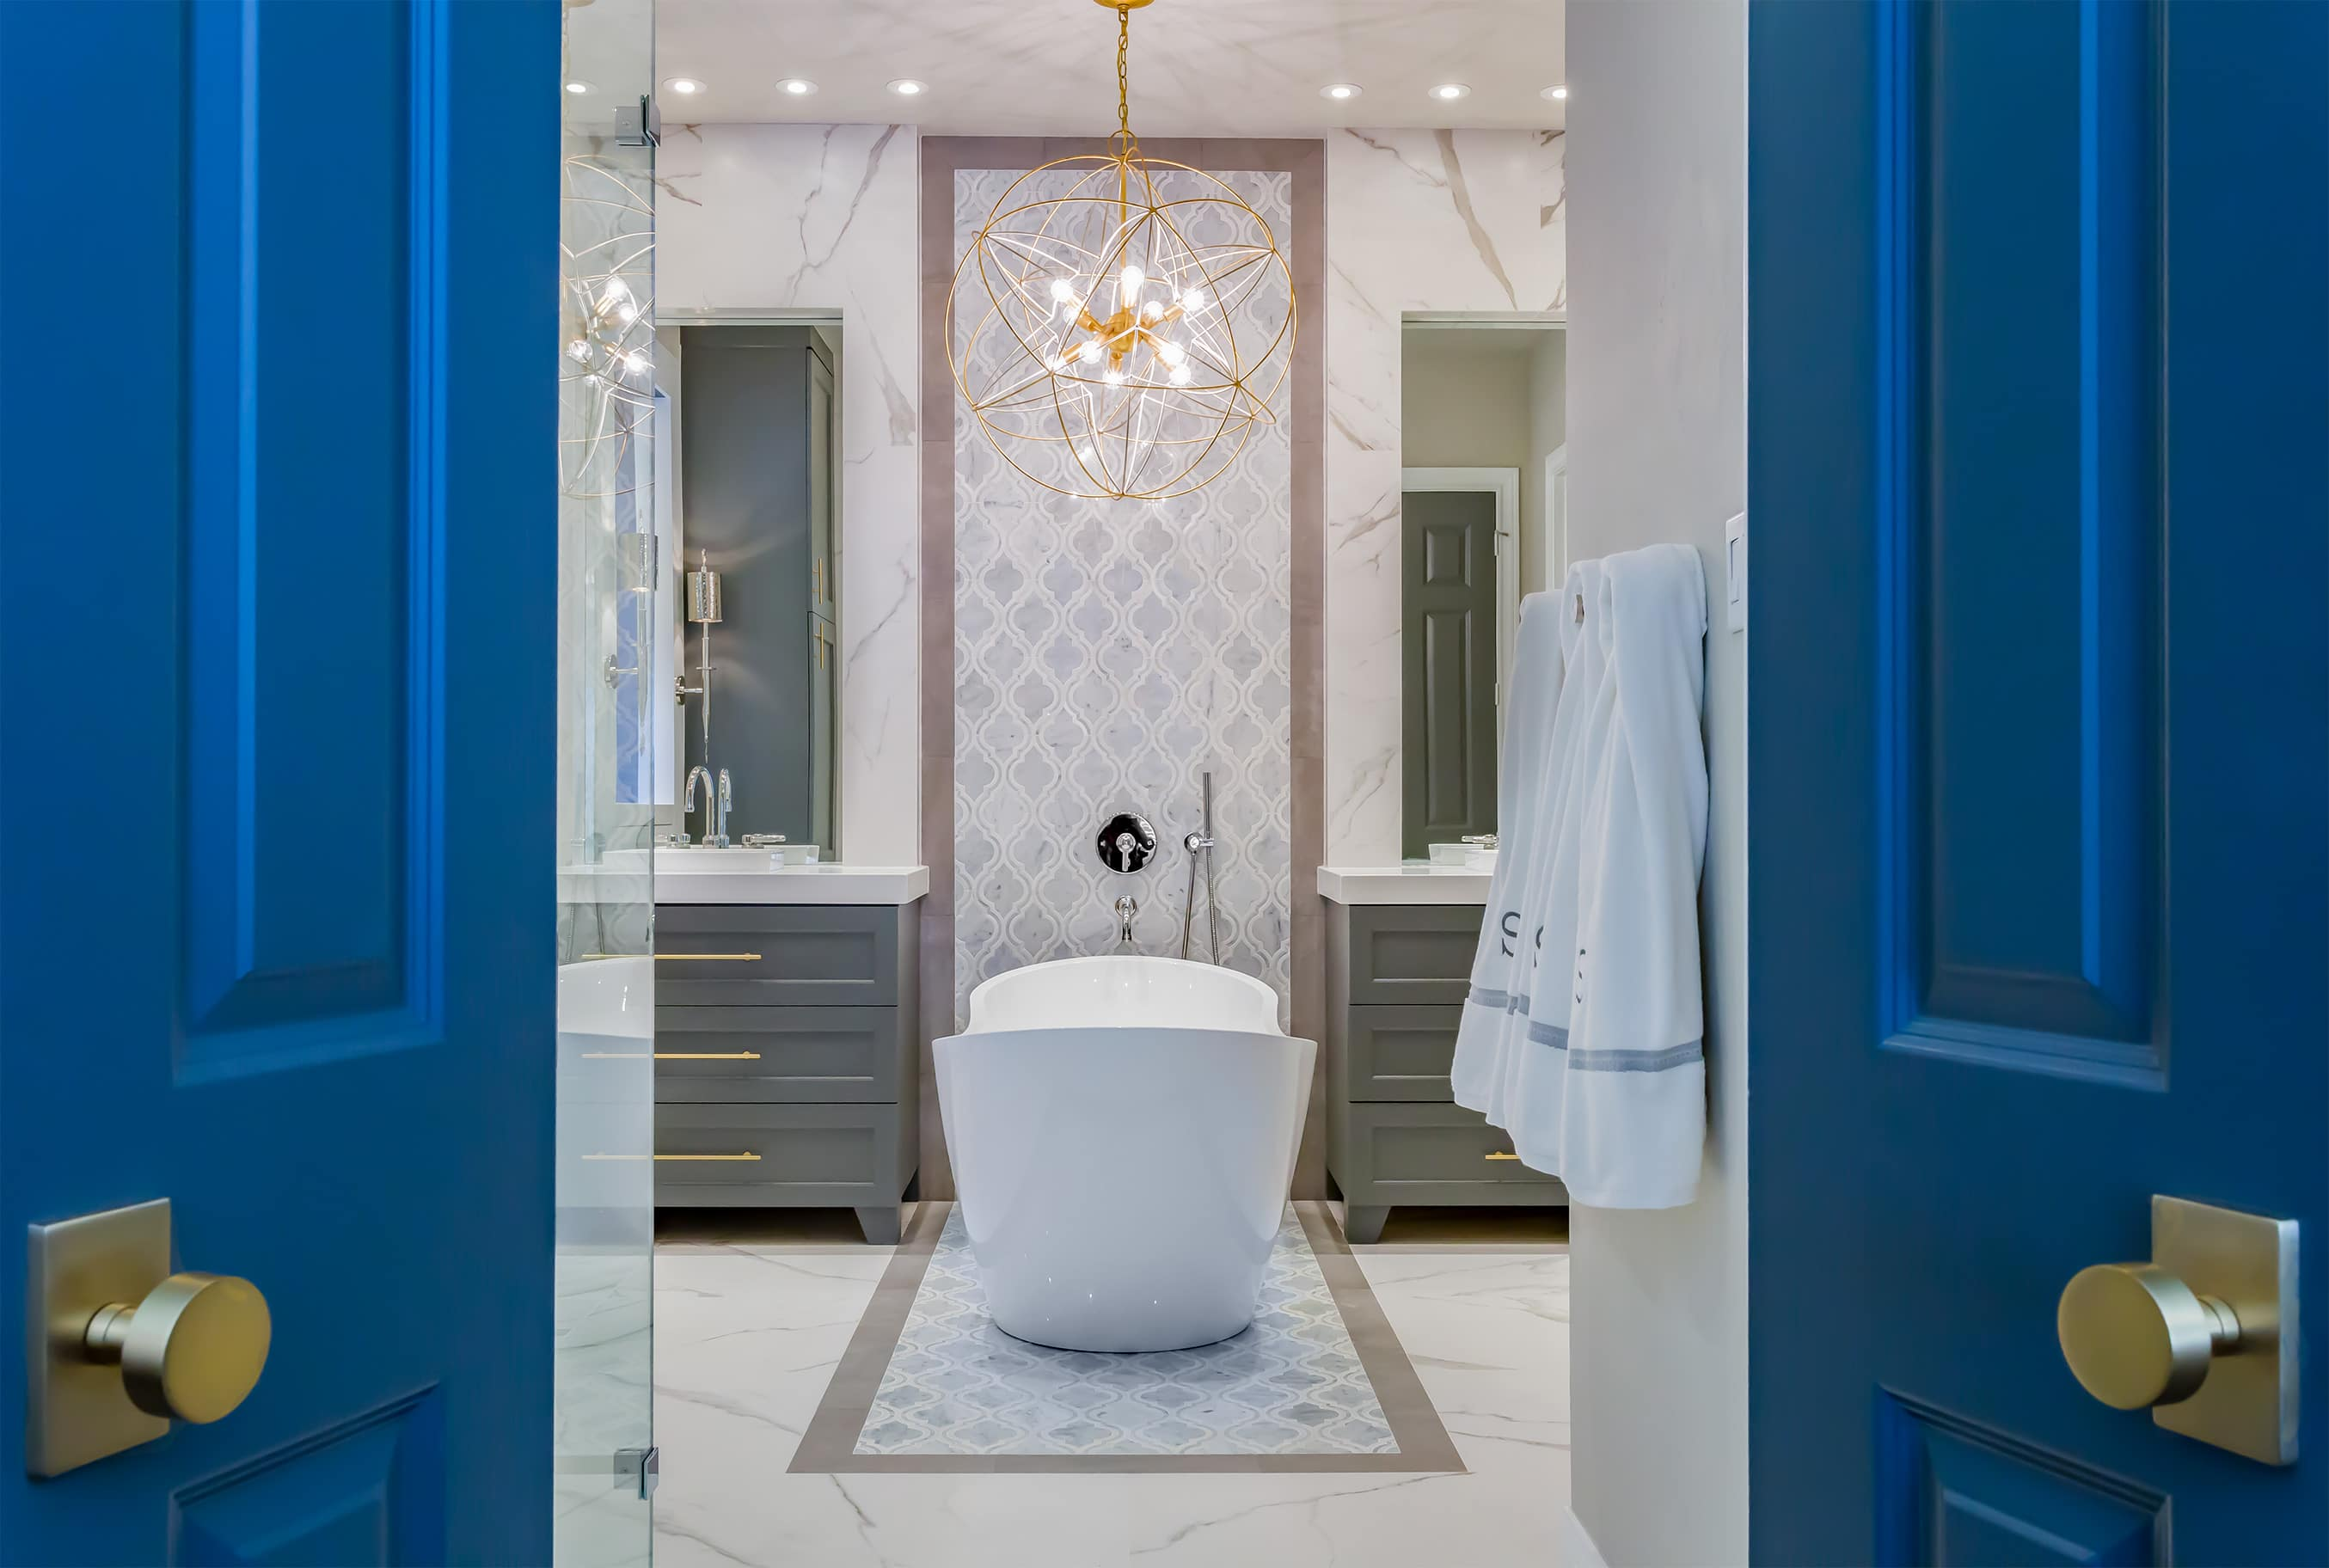 master bathroom renovation gold gray cobalt spring valley houston tx sweetlake. Black Bedroom Furniture Sets. Home Design Ideas